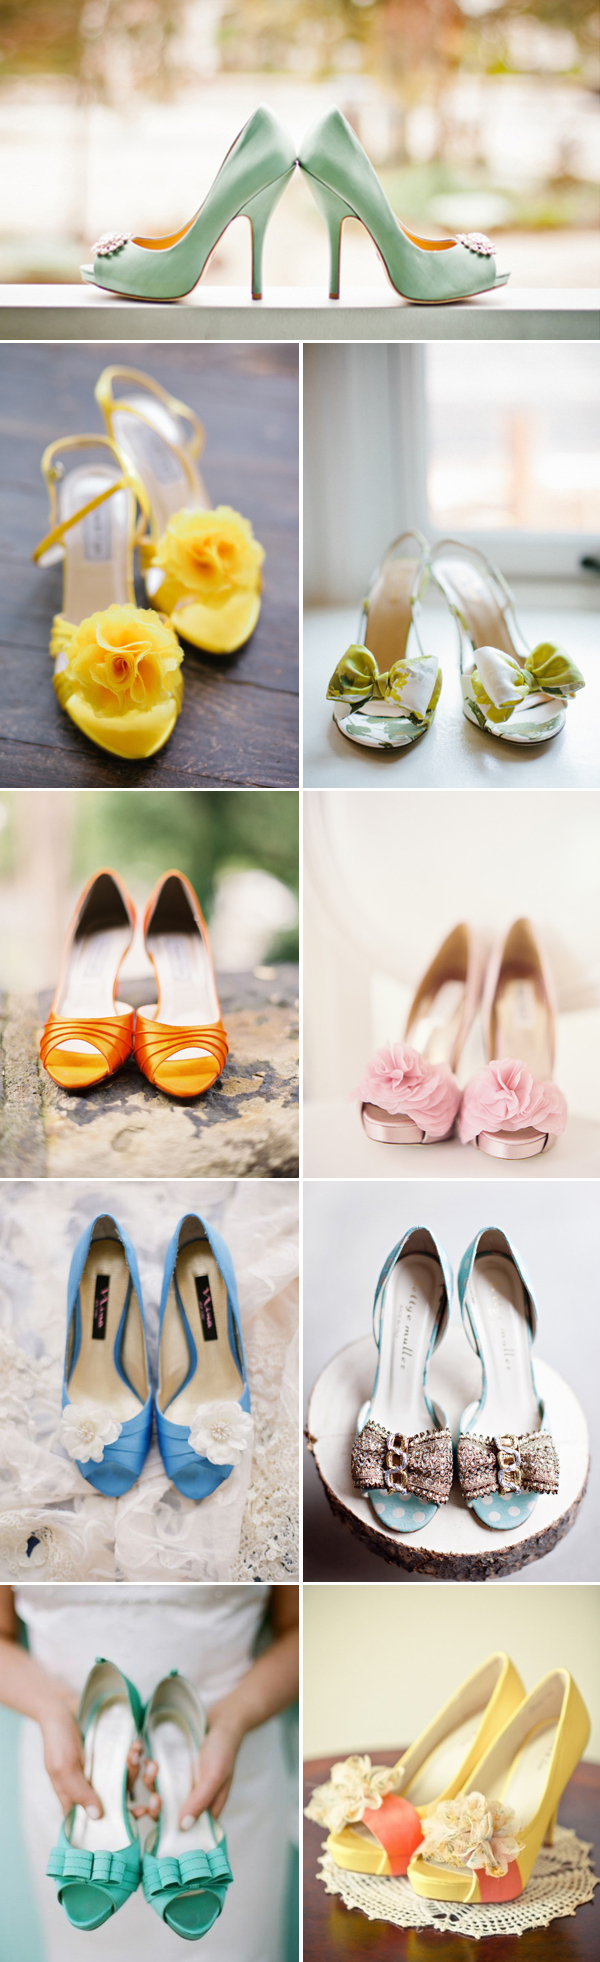 Wedding_Philippines_Most_Loved_Wedding_Shoes_for_Brides_Colorful-Peep-Toe-Wedding-Shoes-Yellow-Pink-Blush-Blue